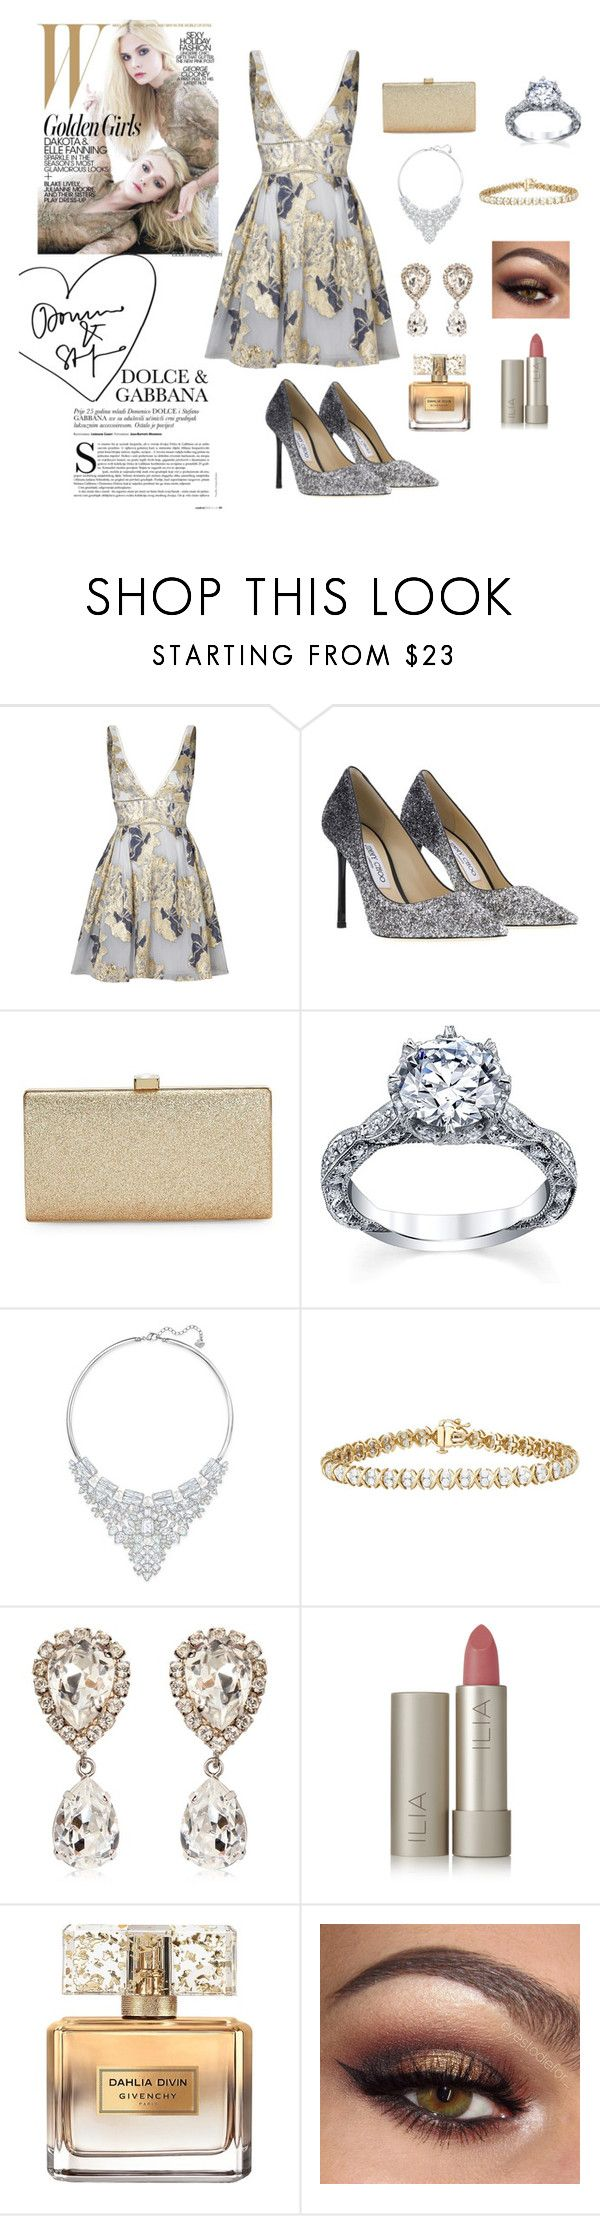 """""""Silver and Gold"""" by themaskedladyinred ❤ liked on Polyvore featuring Notte by Marchesa, Jimmy Choo, La Regale, Swarovski, Dolce&Gabbana, Ilia and Givenchy"""